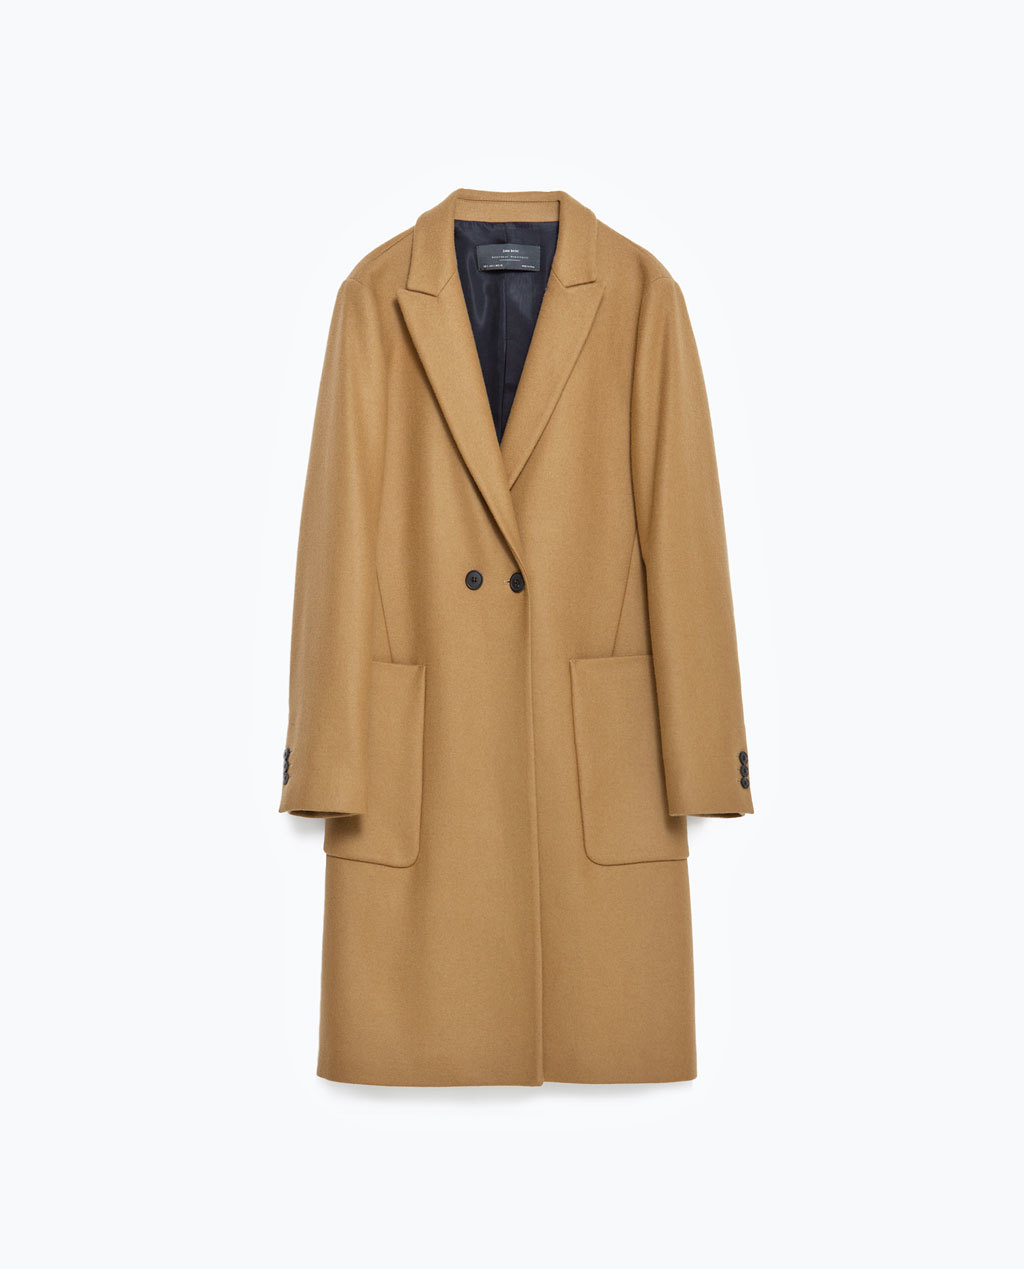 Wool Coat With Lapels - pattern: plain; style: double breasted; length: on the knee; collar: standard lapel/rever collar; predominant colour: camel; occasions: casual, work, creative work; fit: straight cut (boxy); fibres: wool - mix; sleeve length: long sleeve; sleeve style: standard; collar break: low/open; pattern type: fabric; texture group: woven bulky/heavy; season: s/s 2016; wardrobe: basic